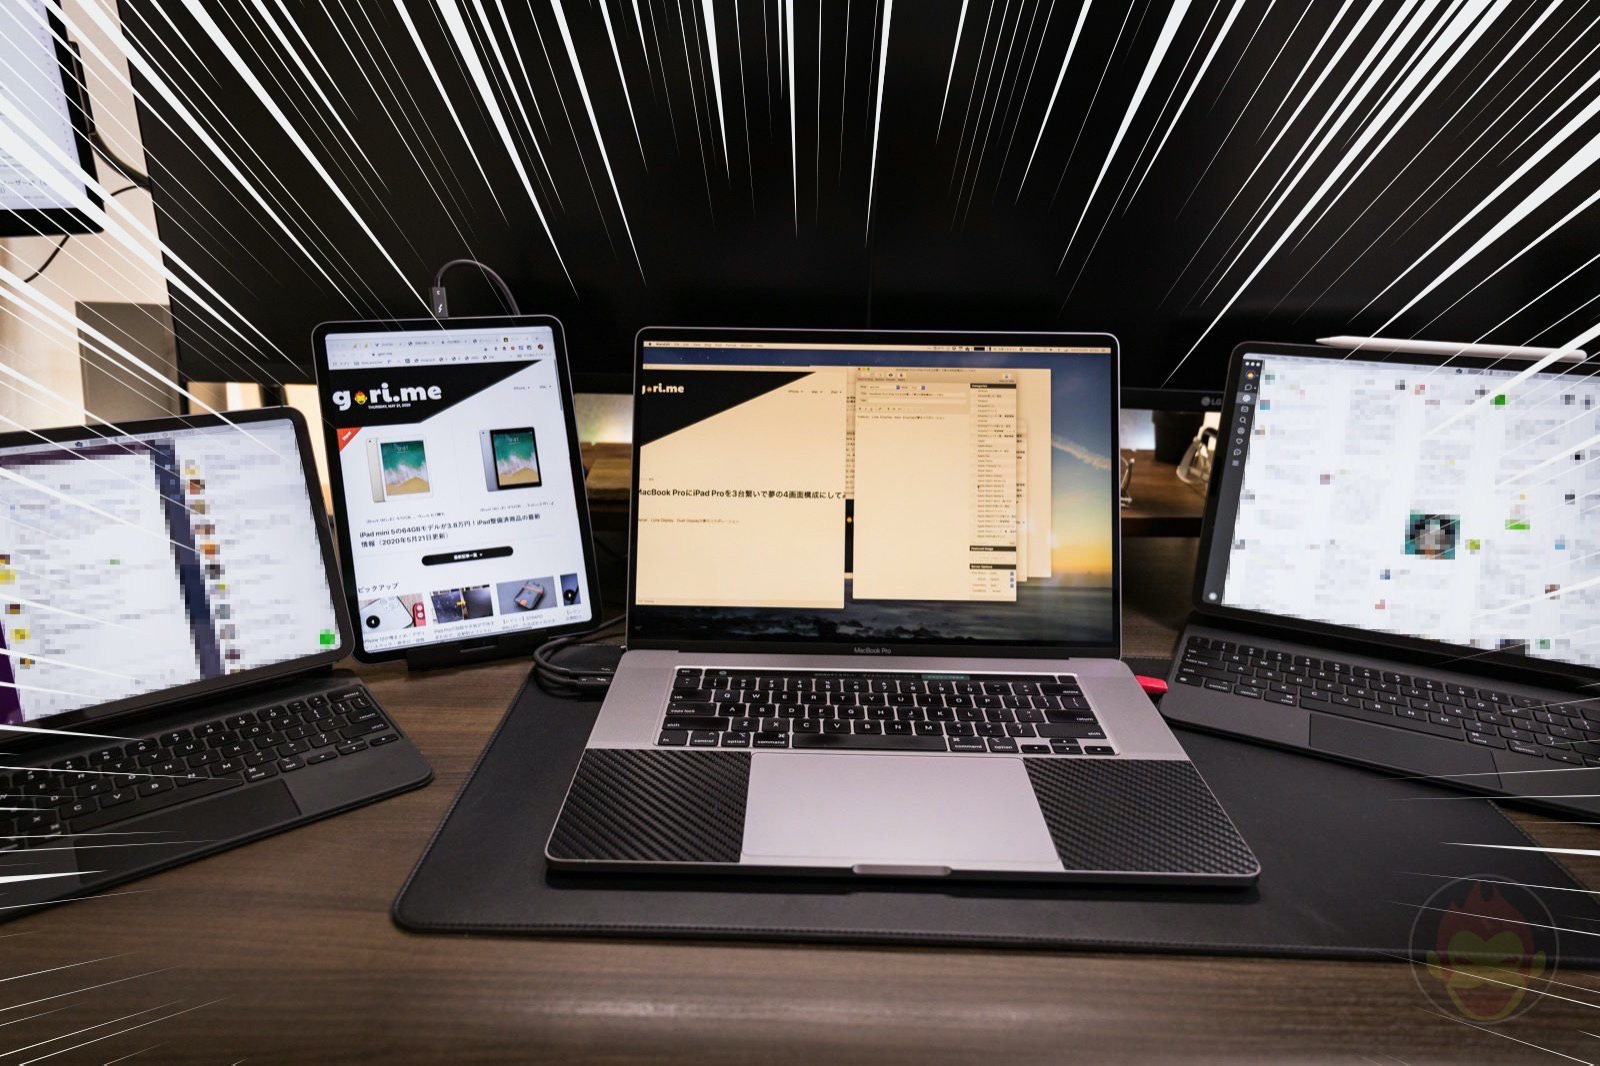 using-ipads-for-multidisplay-support-11-arrows.jpg